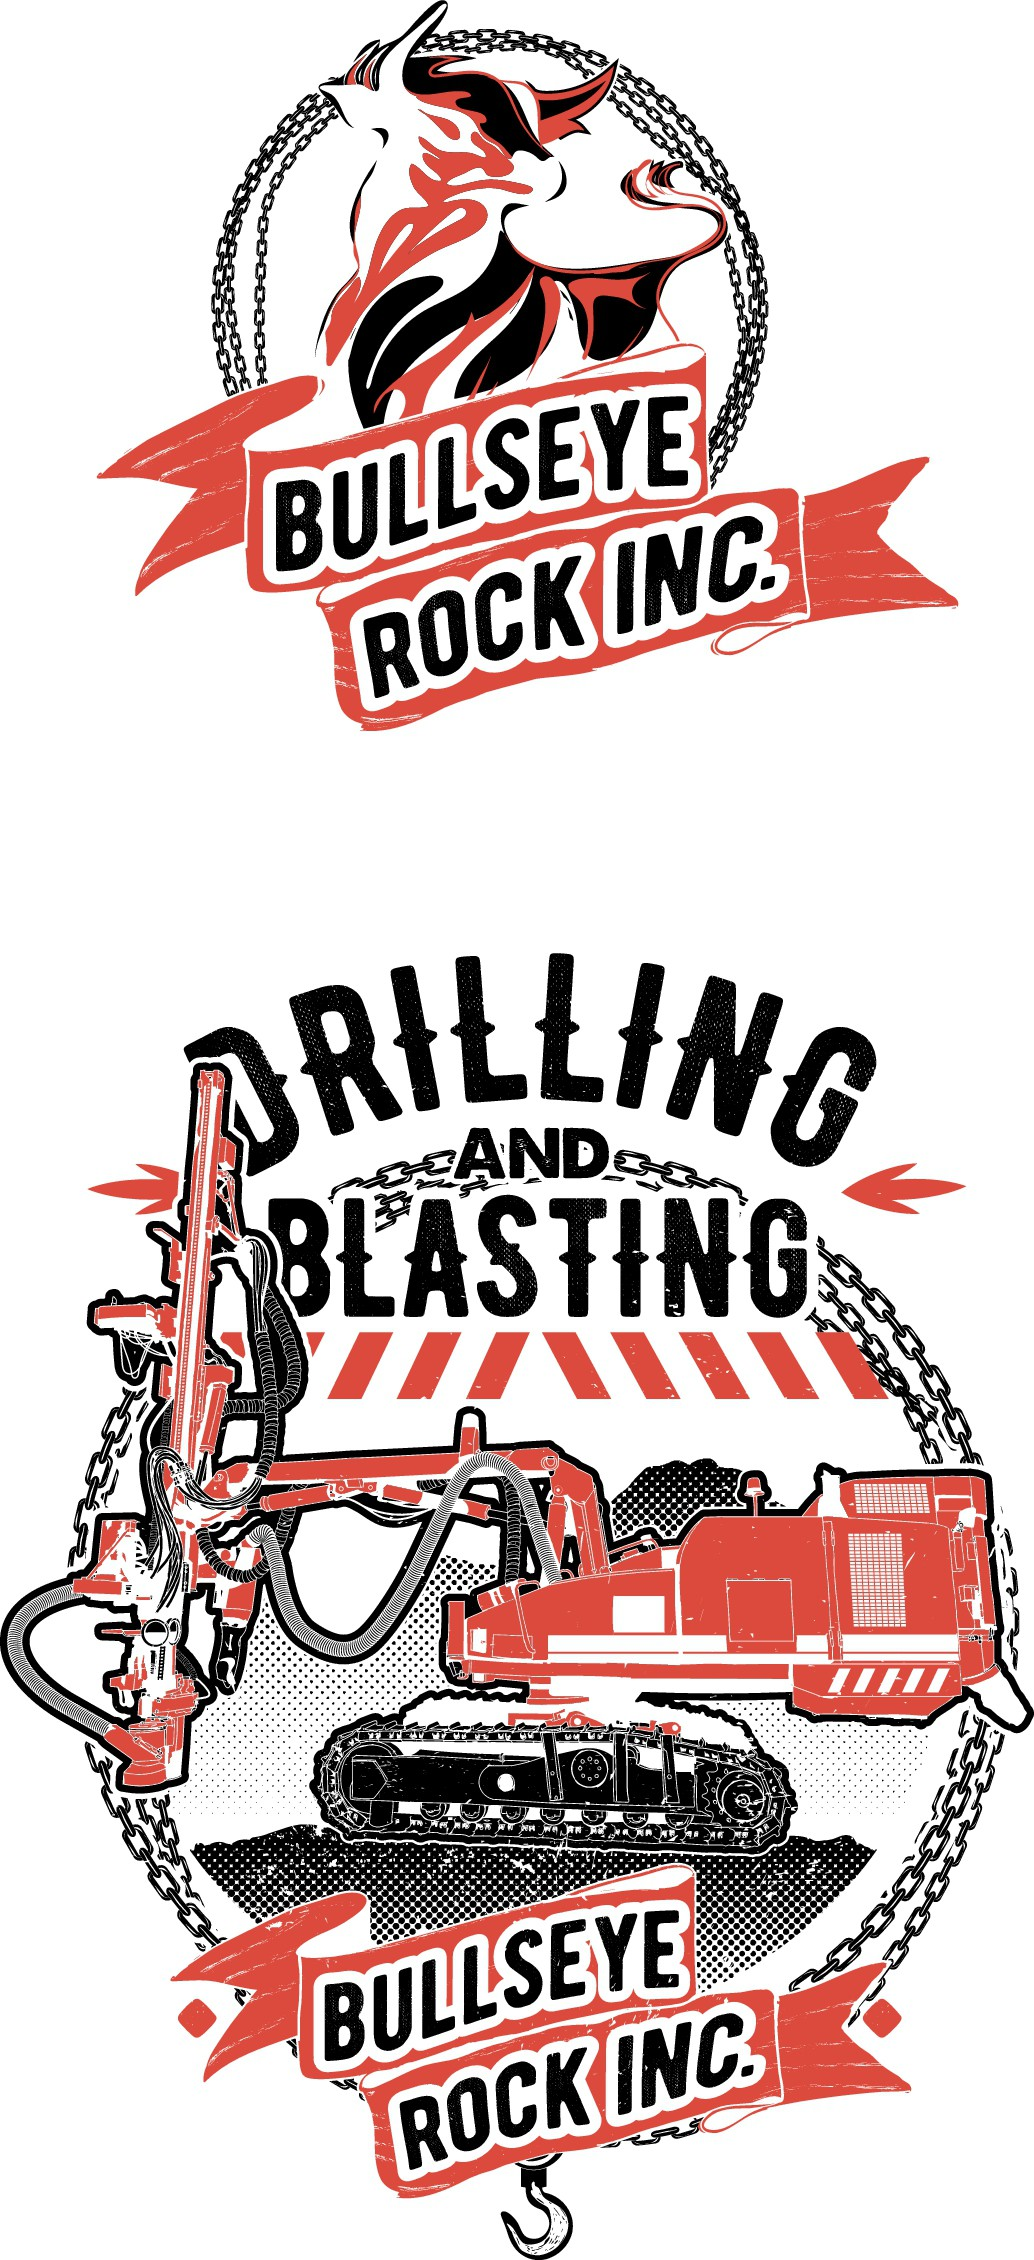 Bullseye rock inc. - drilling and blasting company looking for a vintage/old school tshirt design.